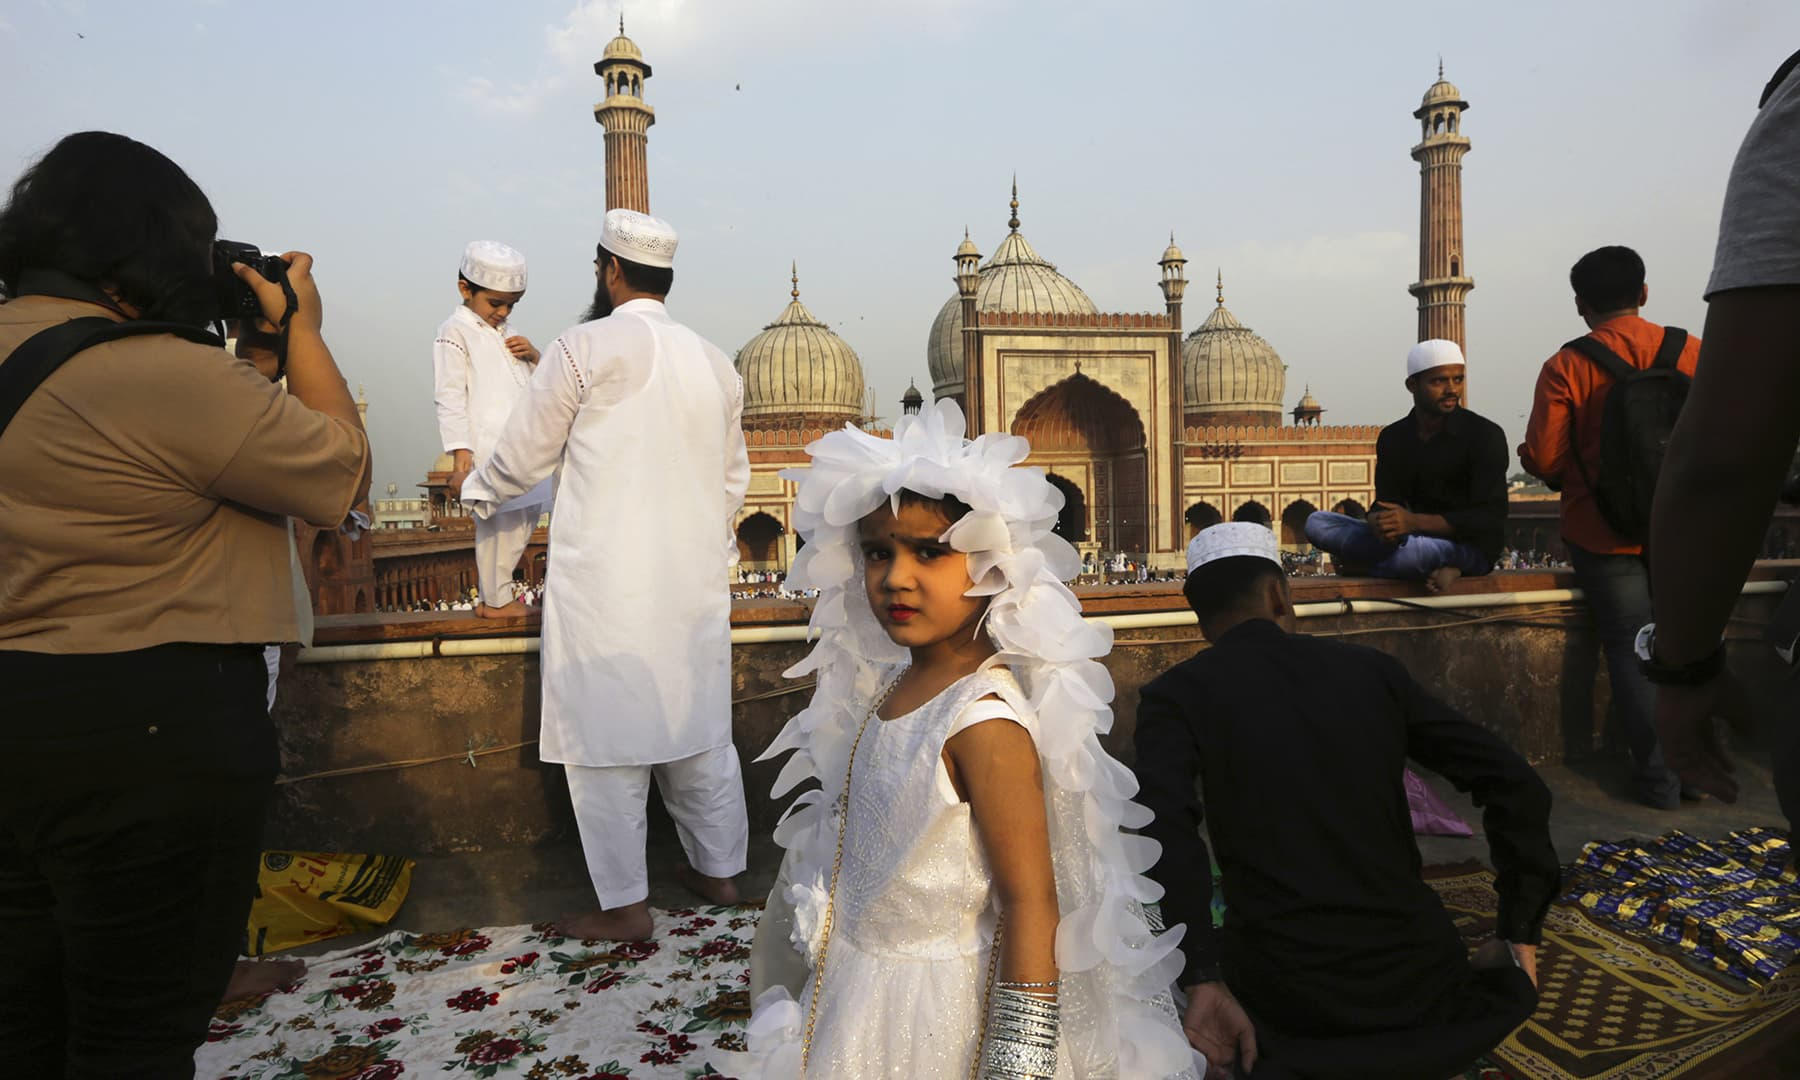 An girl in a celebratory dress arrives with her family to offer Eidul Fitr prayers at the Jama Masjid in New Delhi, India on Wednesday, June 5. — AP